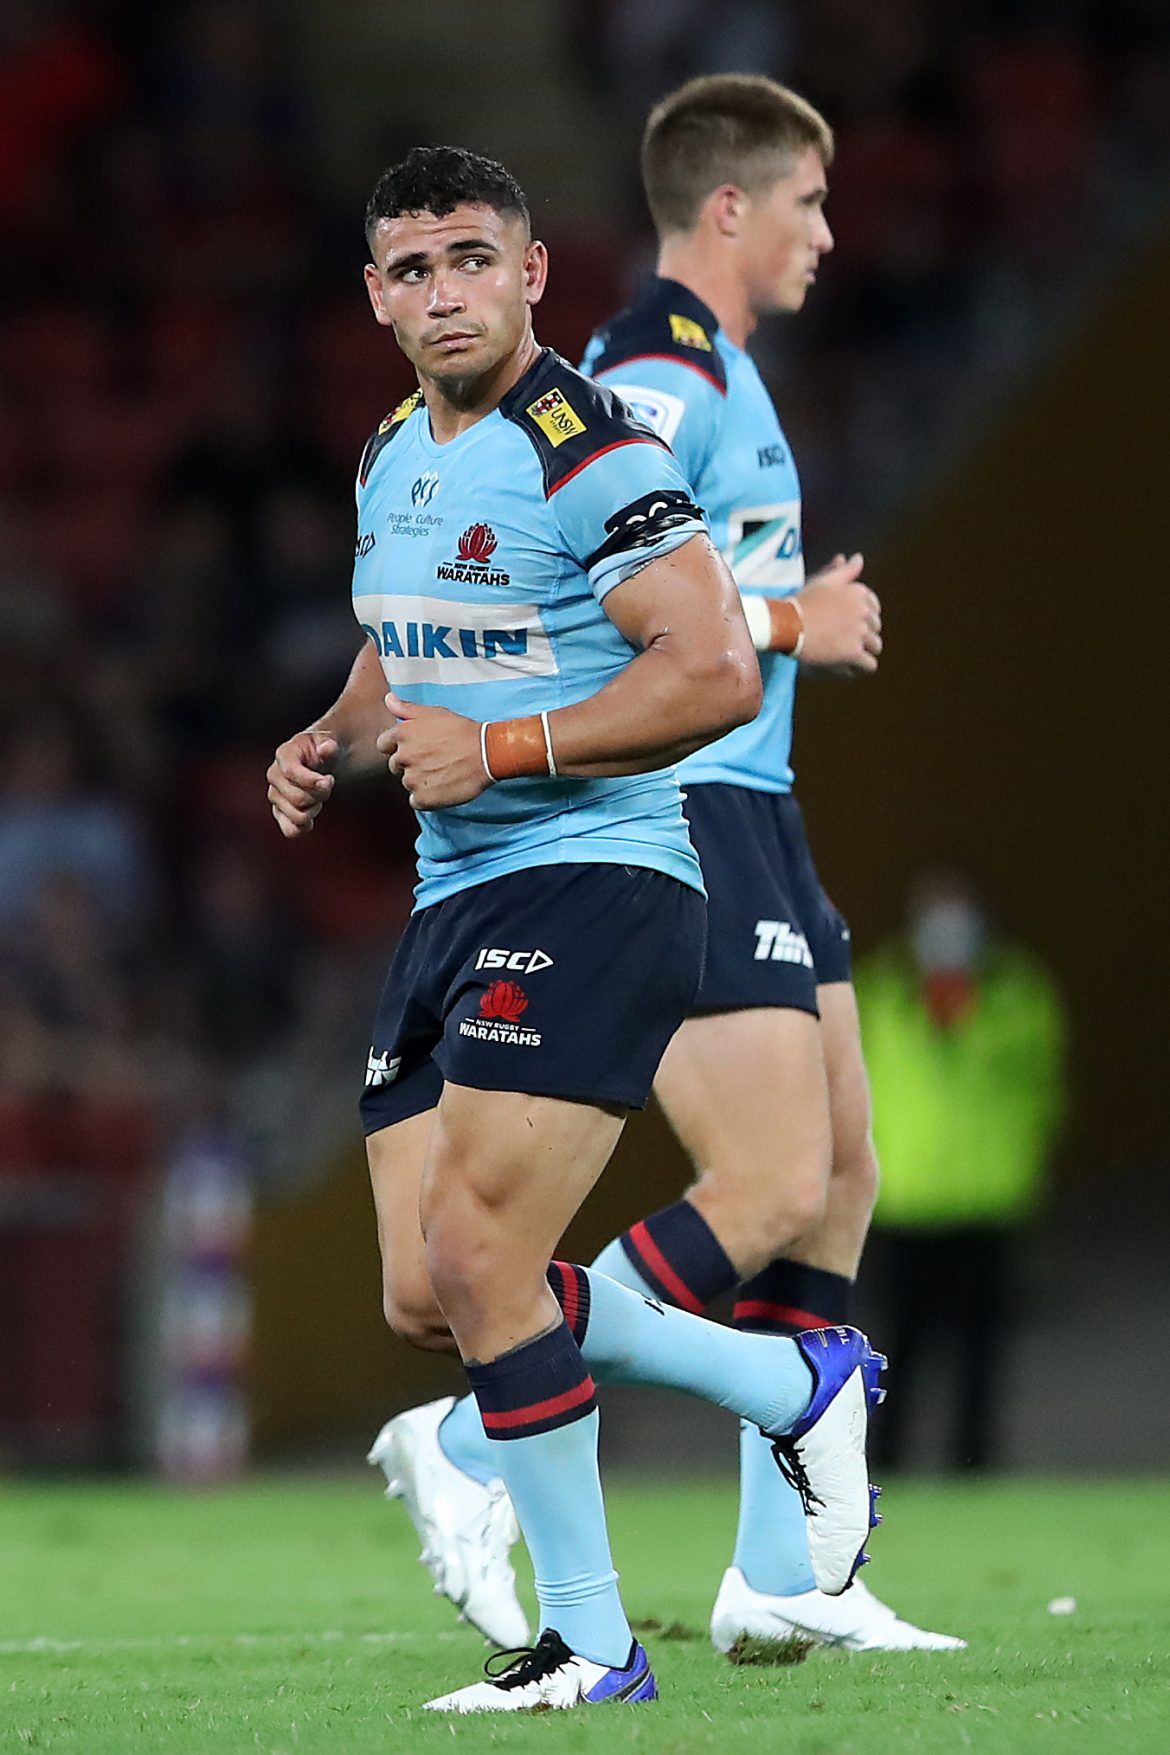 Queensland's record win in NSW horror show